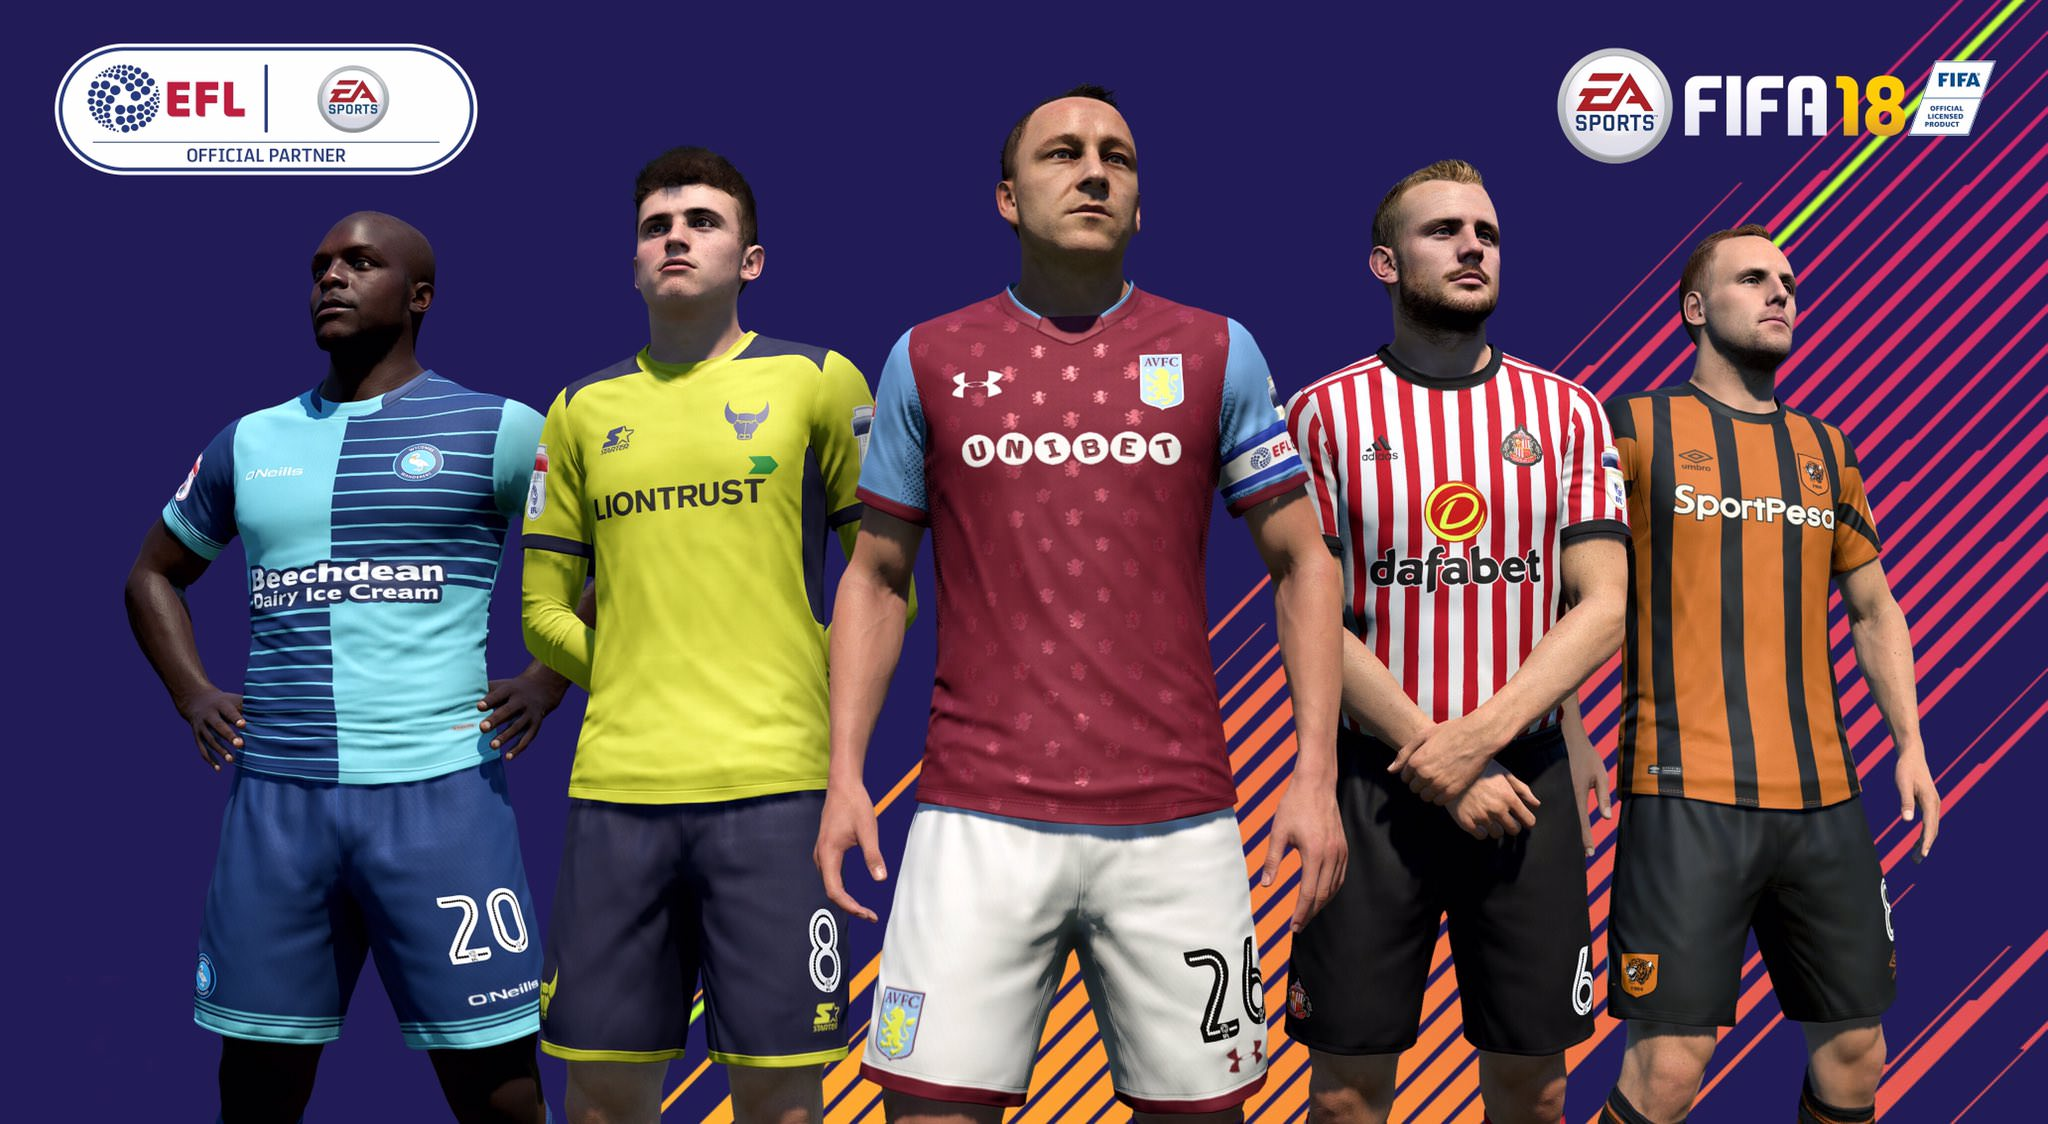 EA Sports Announces Official Partnership with EFL for FIFA 18